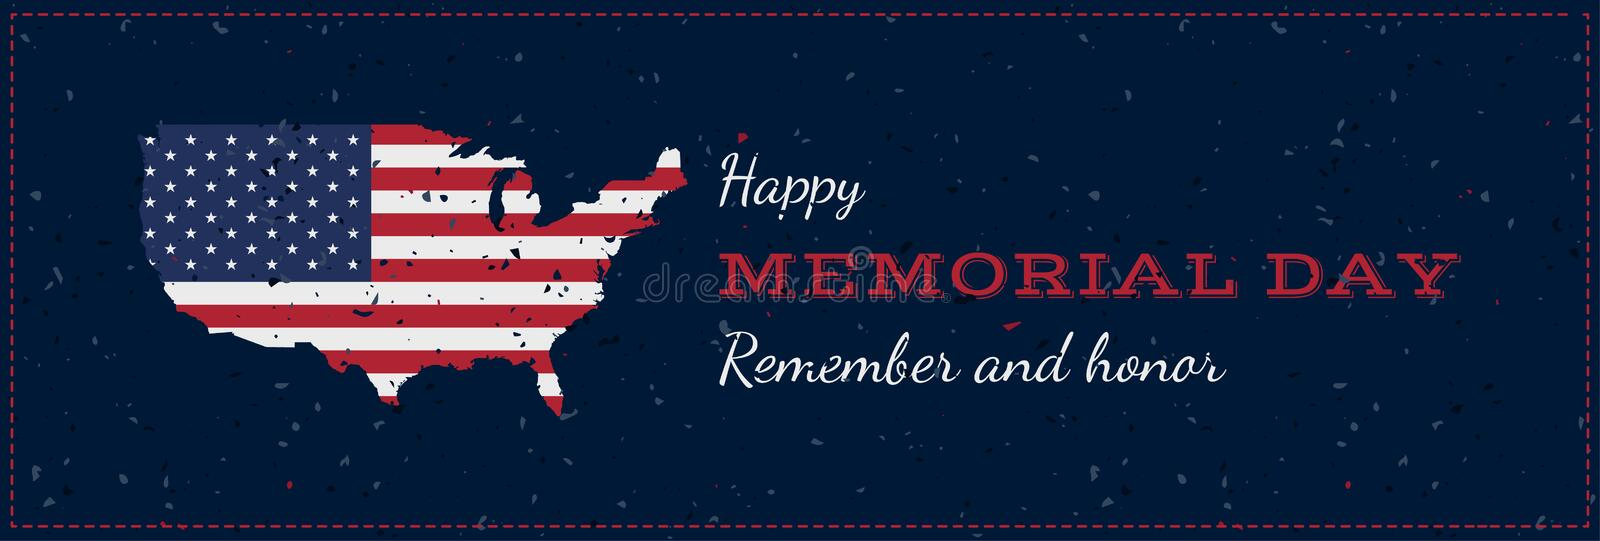 Happy memorial day with USA map. Vintage retro greeting card with flag and old-style texture. National American holiday event. Fla. T Vector illustration EPS10 royalty free illustration